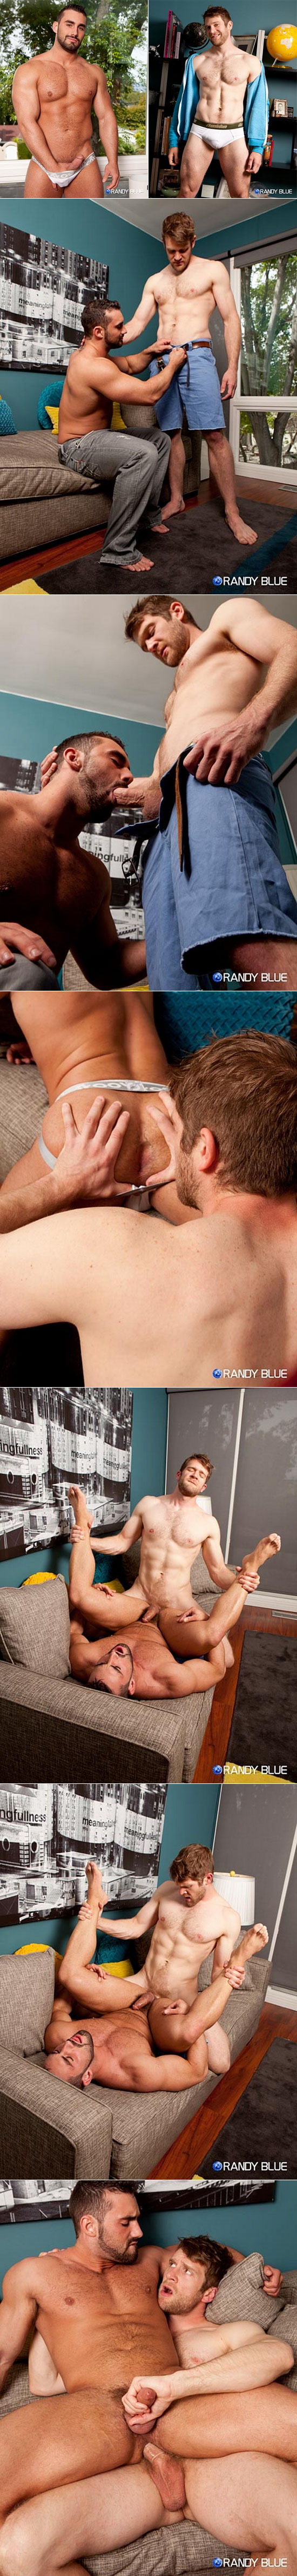 Colby Keller and Jaxton Wheeler at Randy Blue